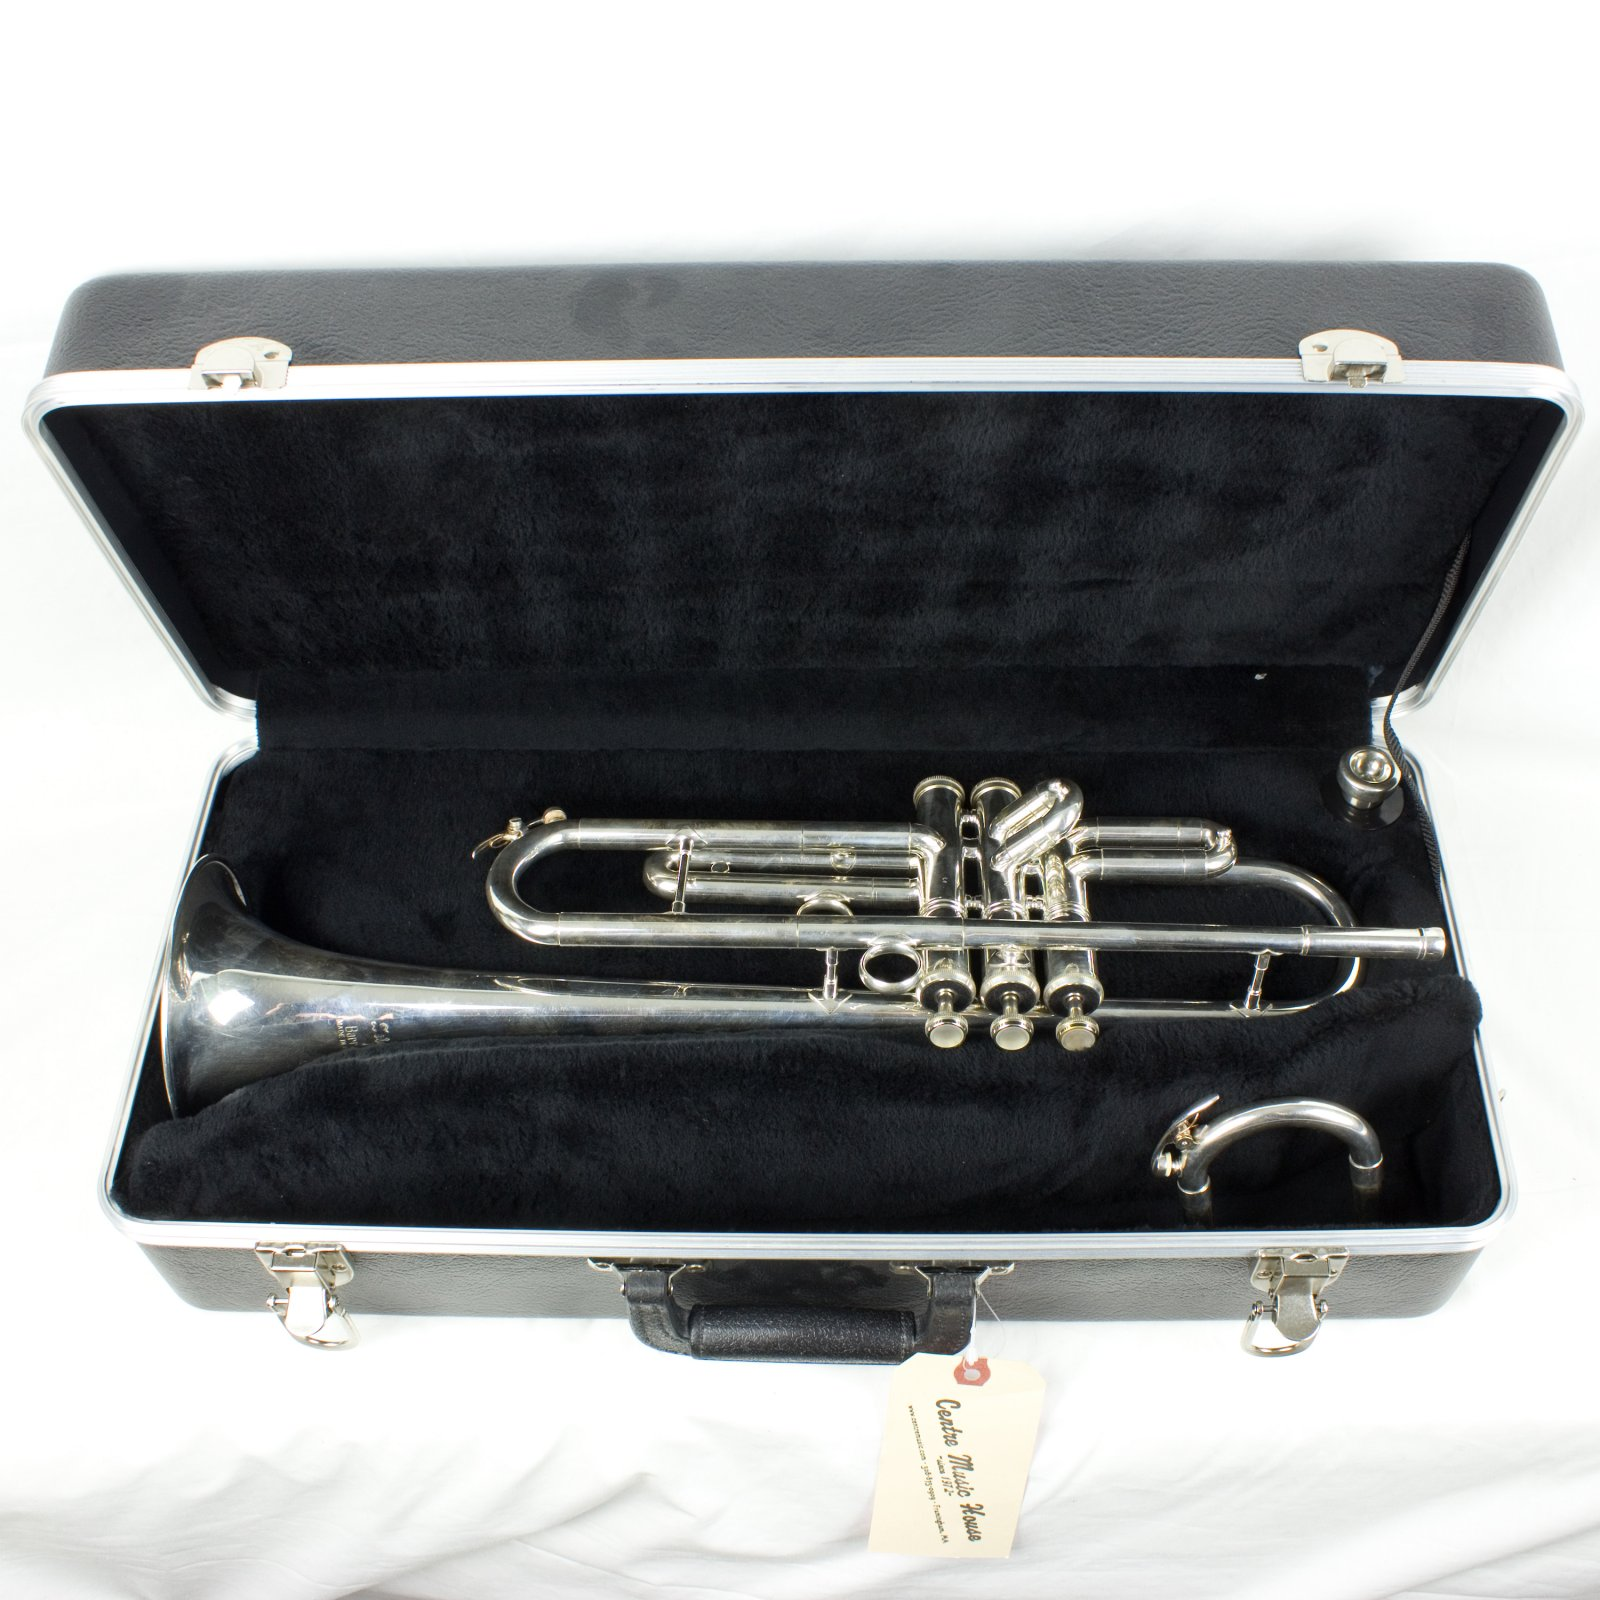 Barratts Soloist C/Bb Convertible Trumpet, Silver Plated, w/ Case (USED)